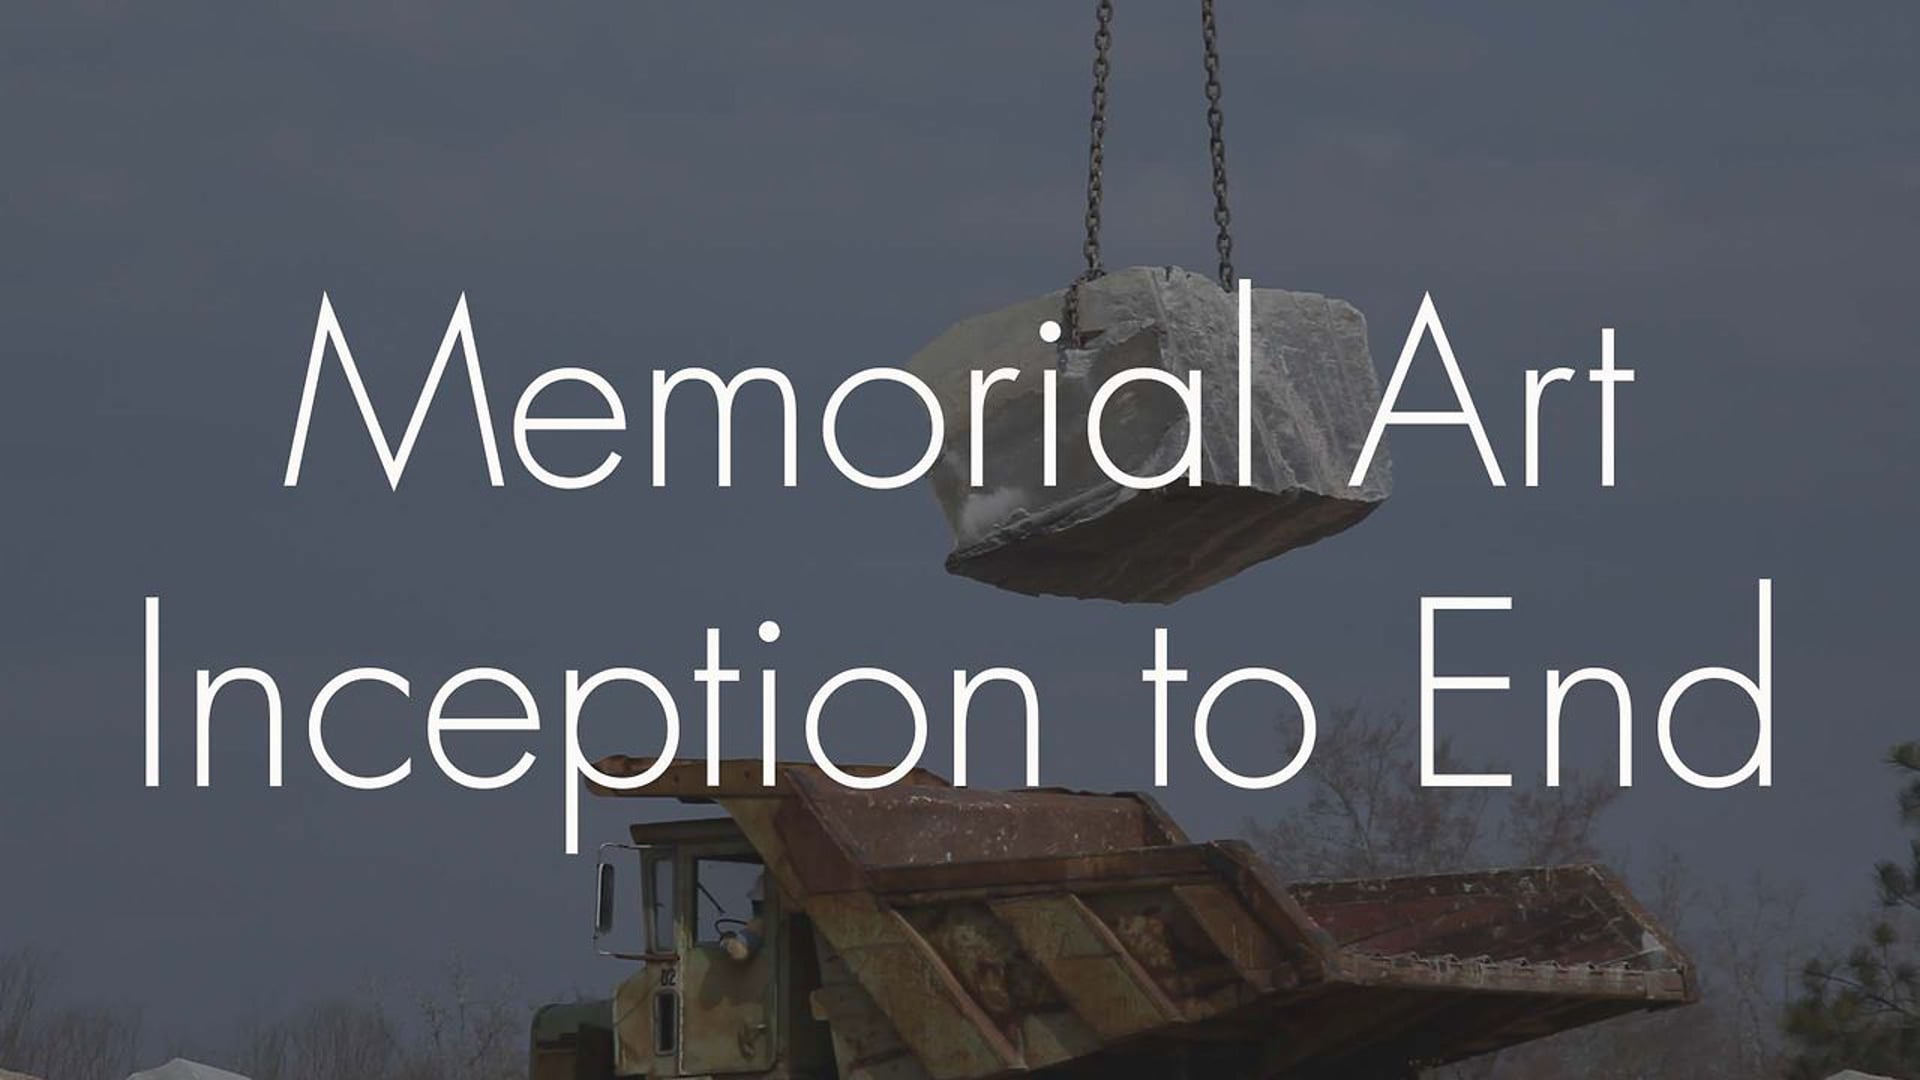 Memorial Art - Inception to End